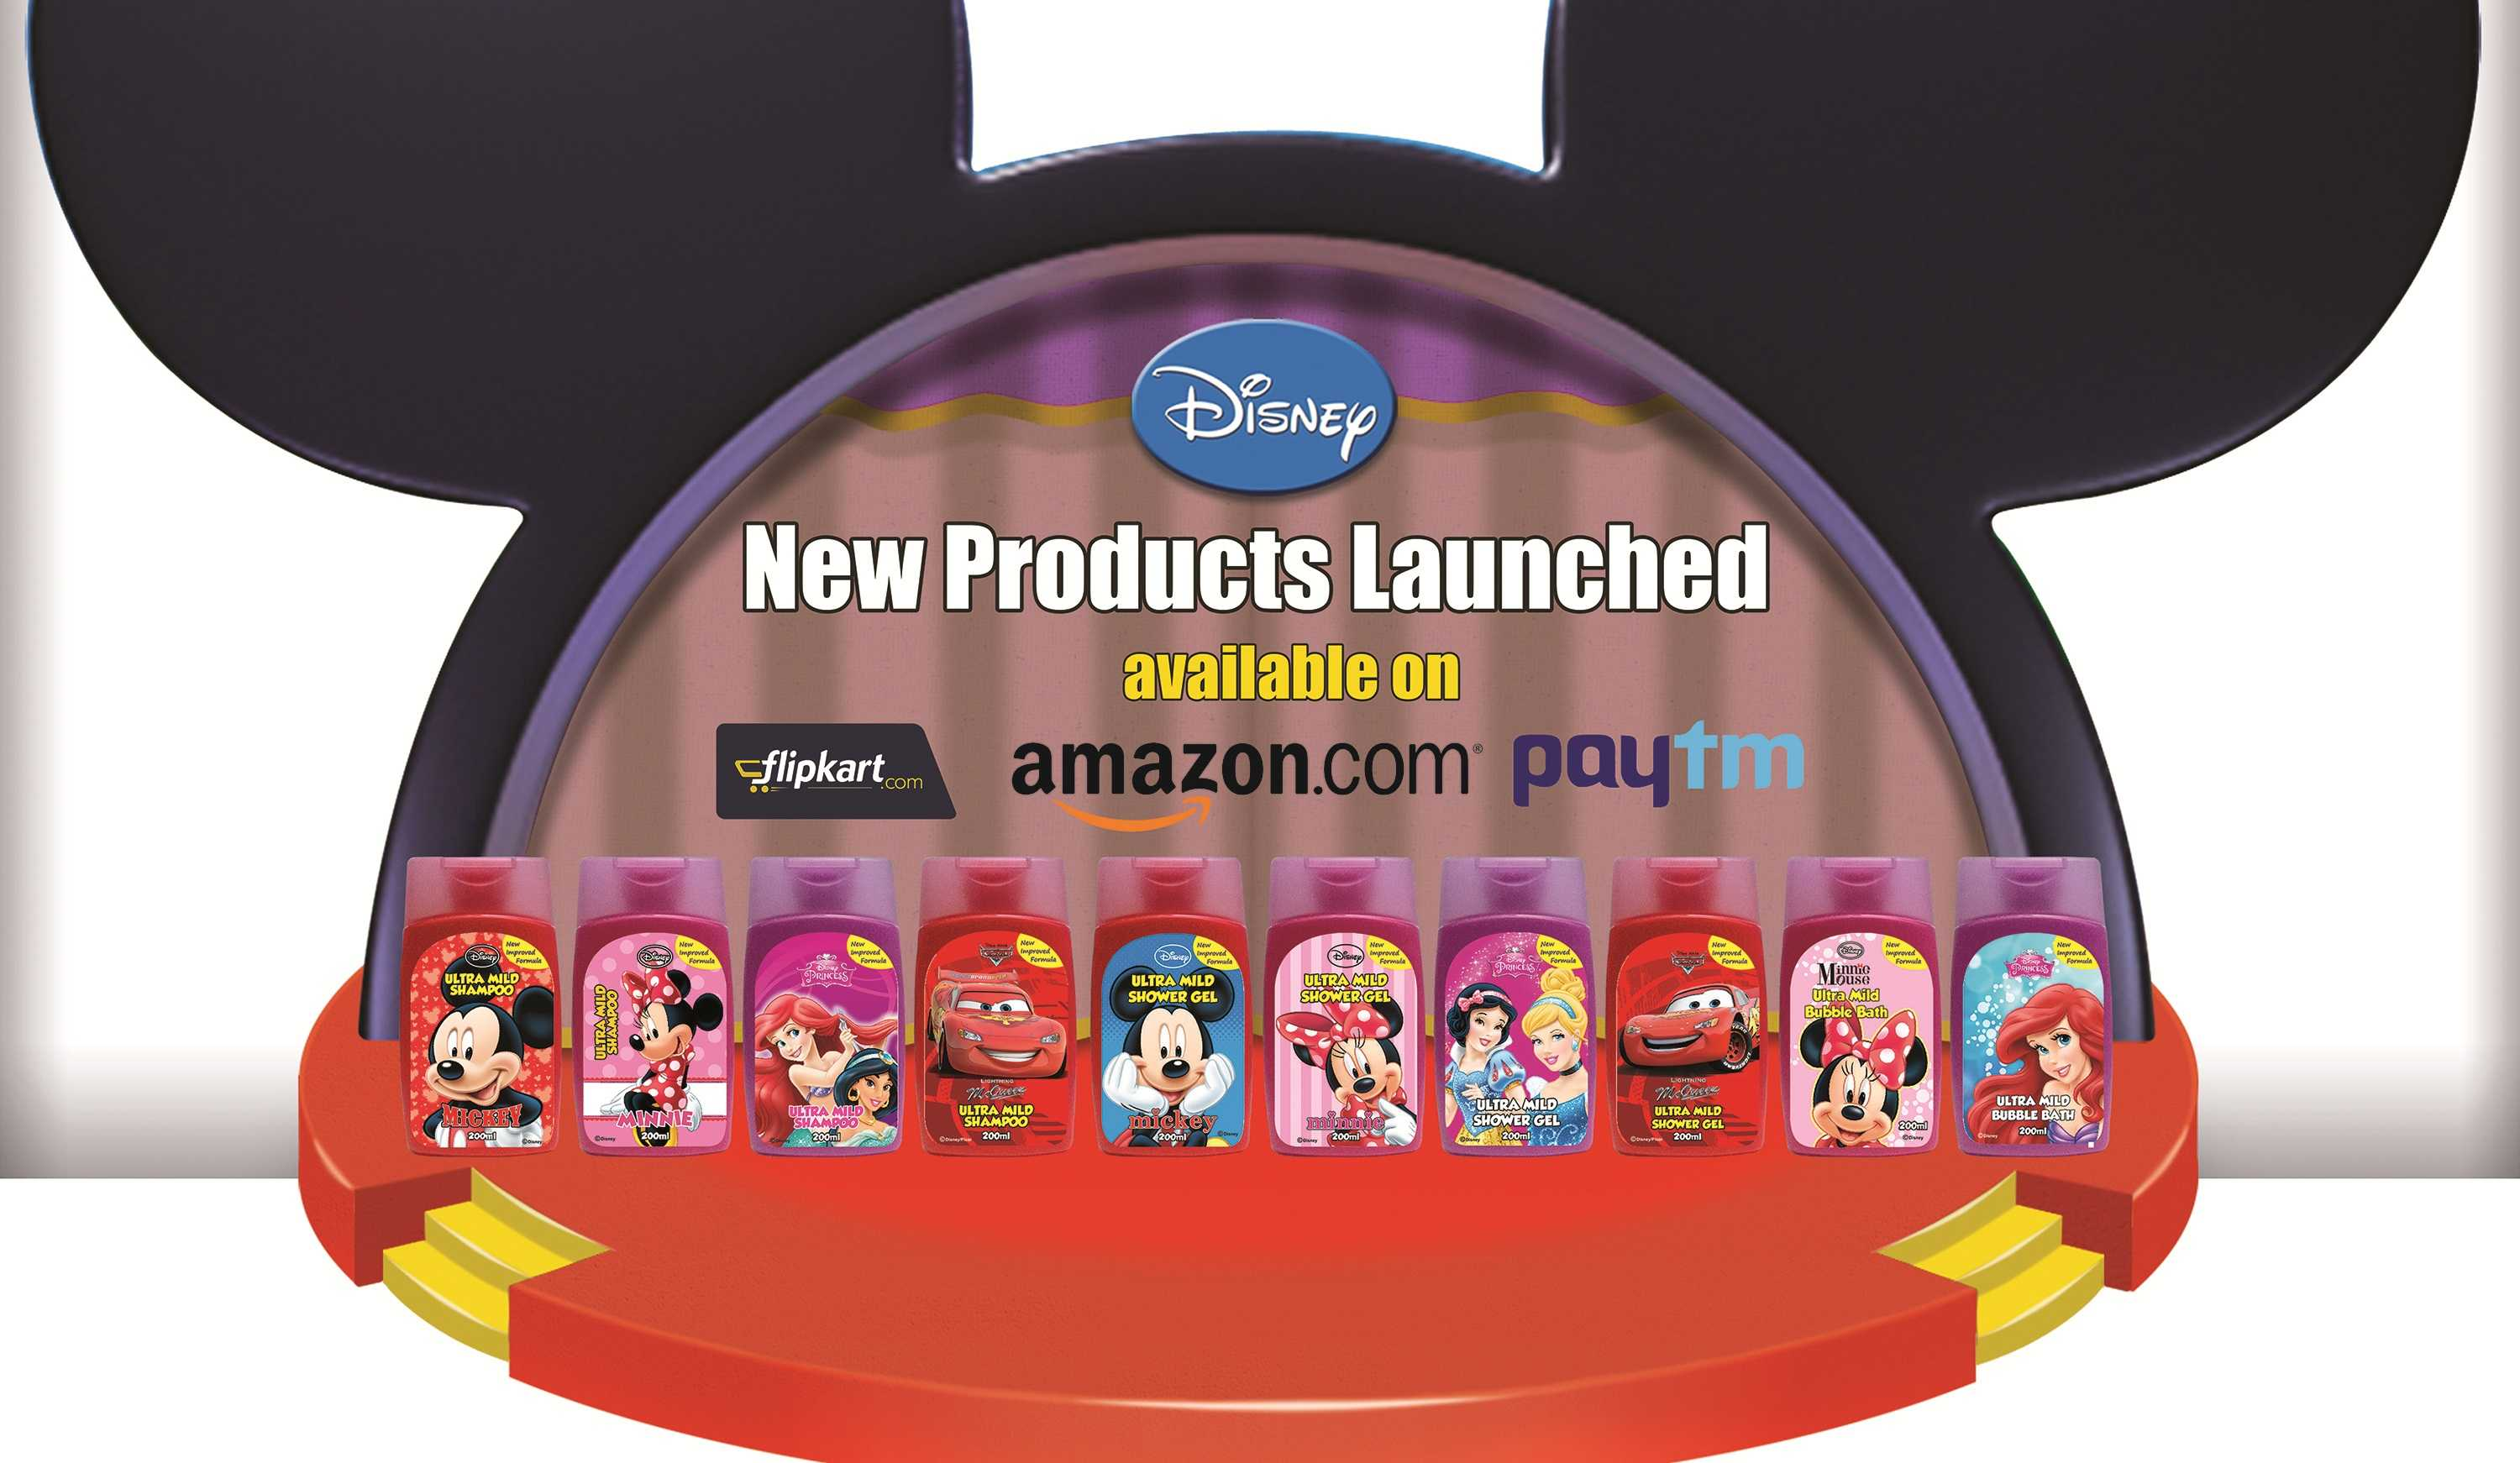 Disney Ultra Mild Series - New Product Launch